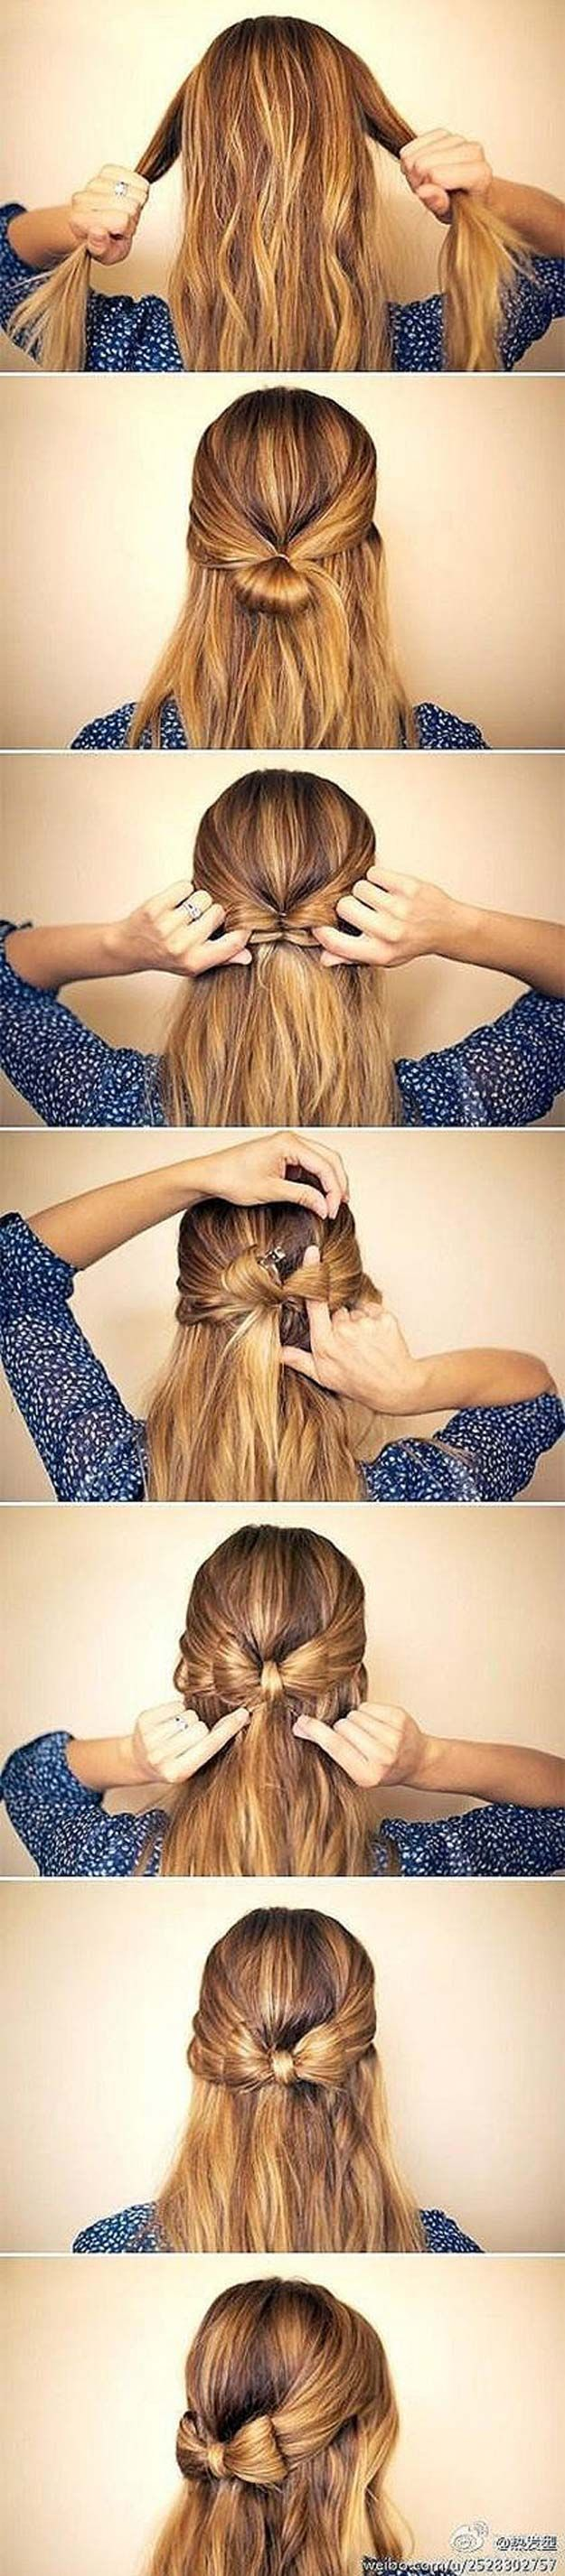 Best Hairstyles for Long Hair - Half Up Ribbon Hairstyle - Step by Step Tutorials for Easy Curls, Updo, Half Up, Braids and Lazy Girl Looks. Prom Ideas, Special Occasion Hair and Braiding Instructions for Teens, Teenagers and Adults, Women and Girls http://diyprojectsforteens.com/best-hairstyles-long-hair